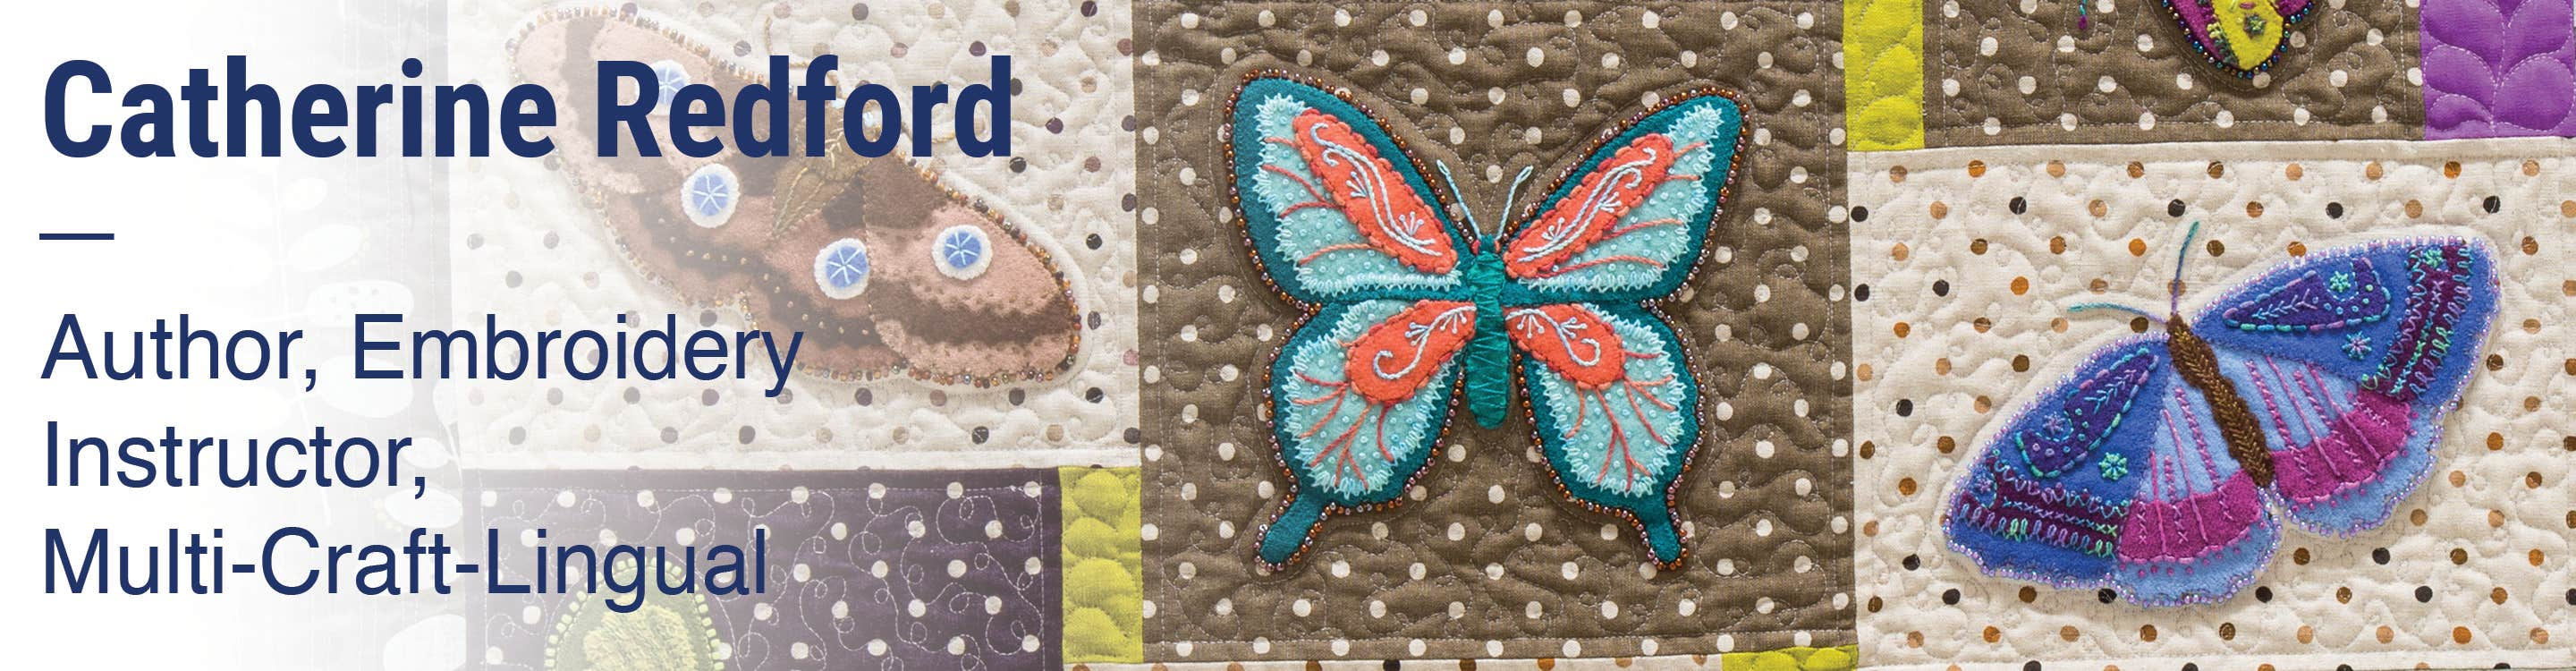 Catherine Redford Author, Embroidery Instructor, Multi-Craft-Lingual